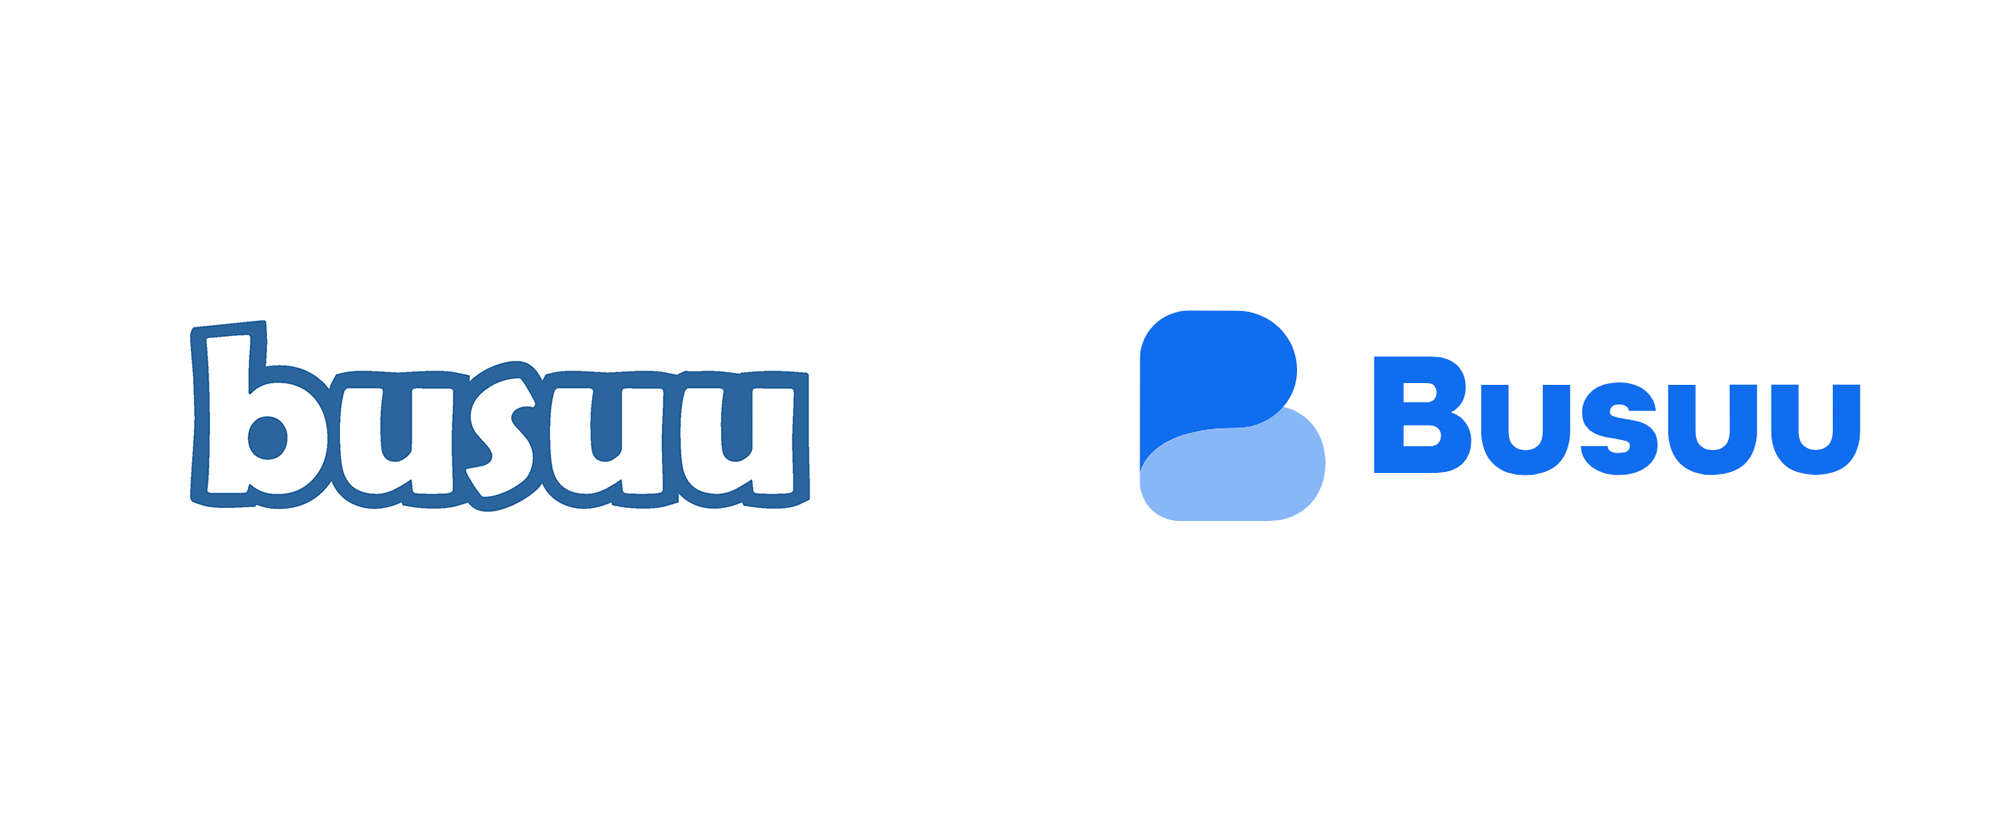 New Logo for Busuu by Confederation Studio and In-house